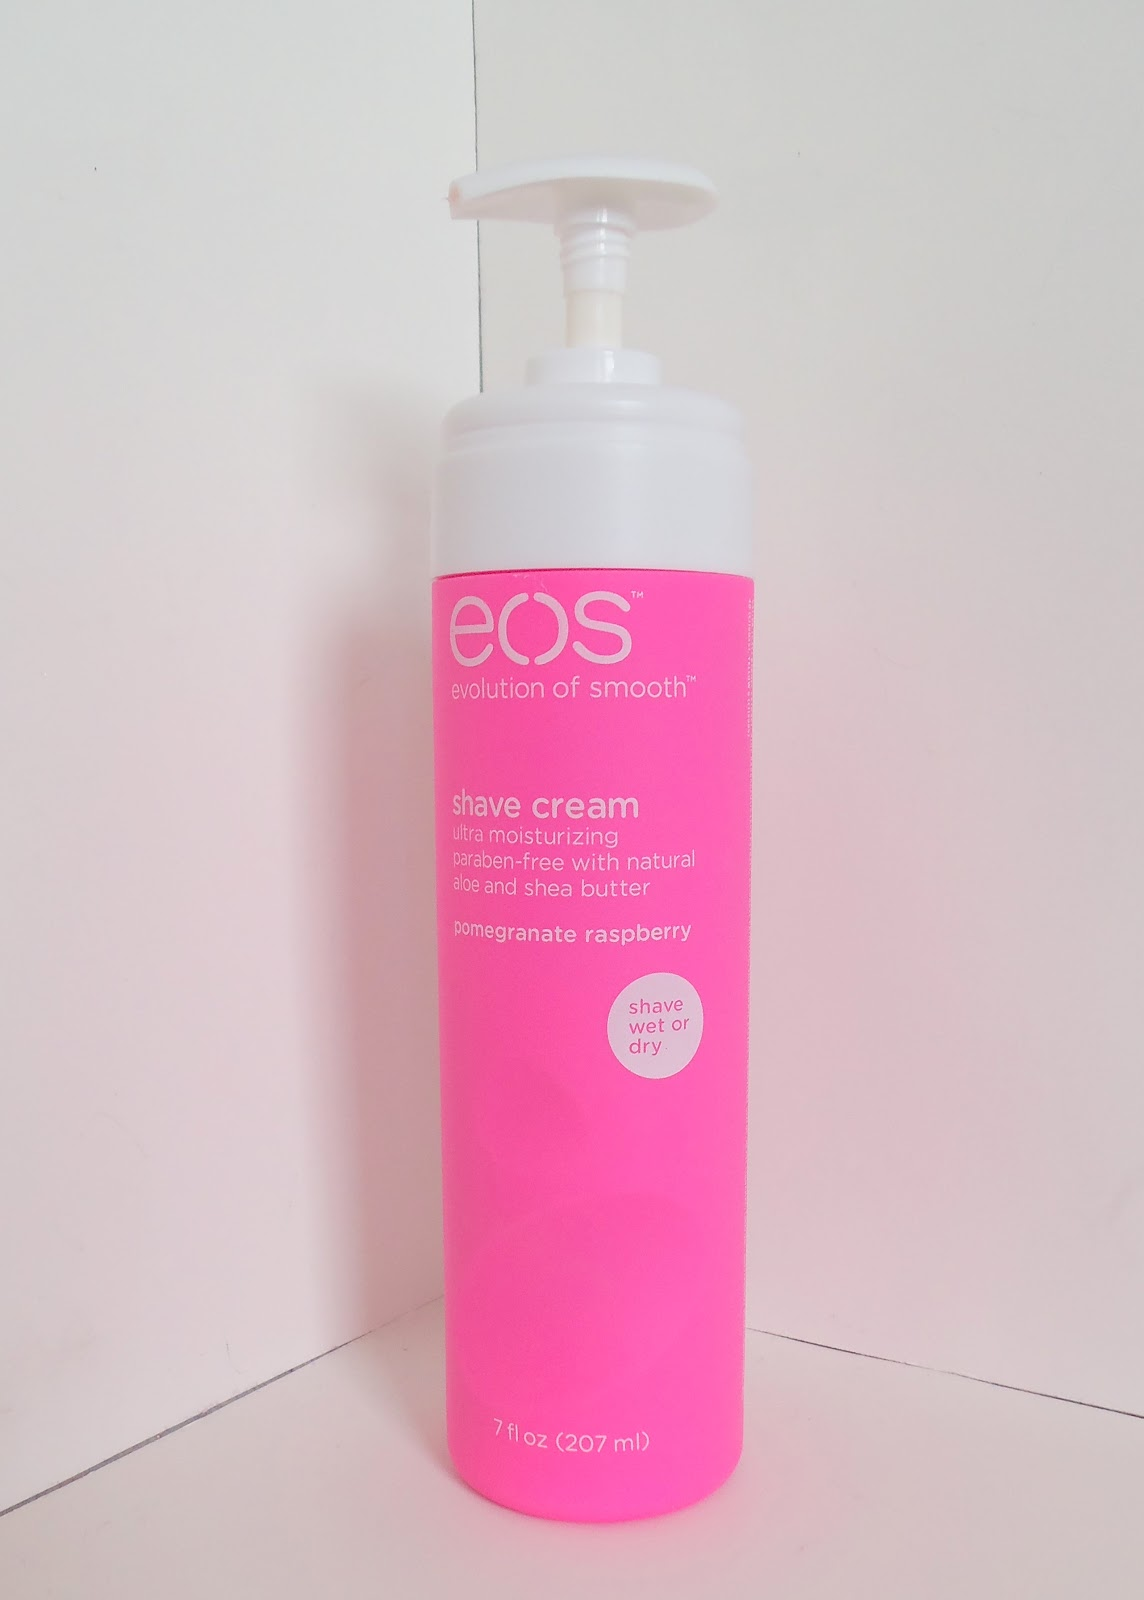 Eos shave